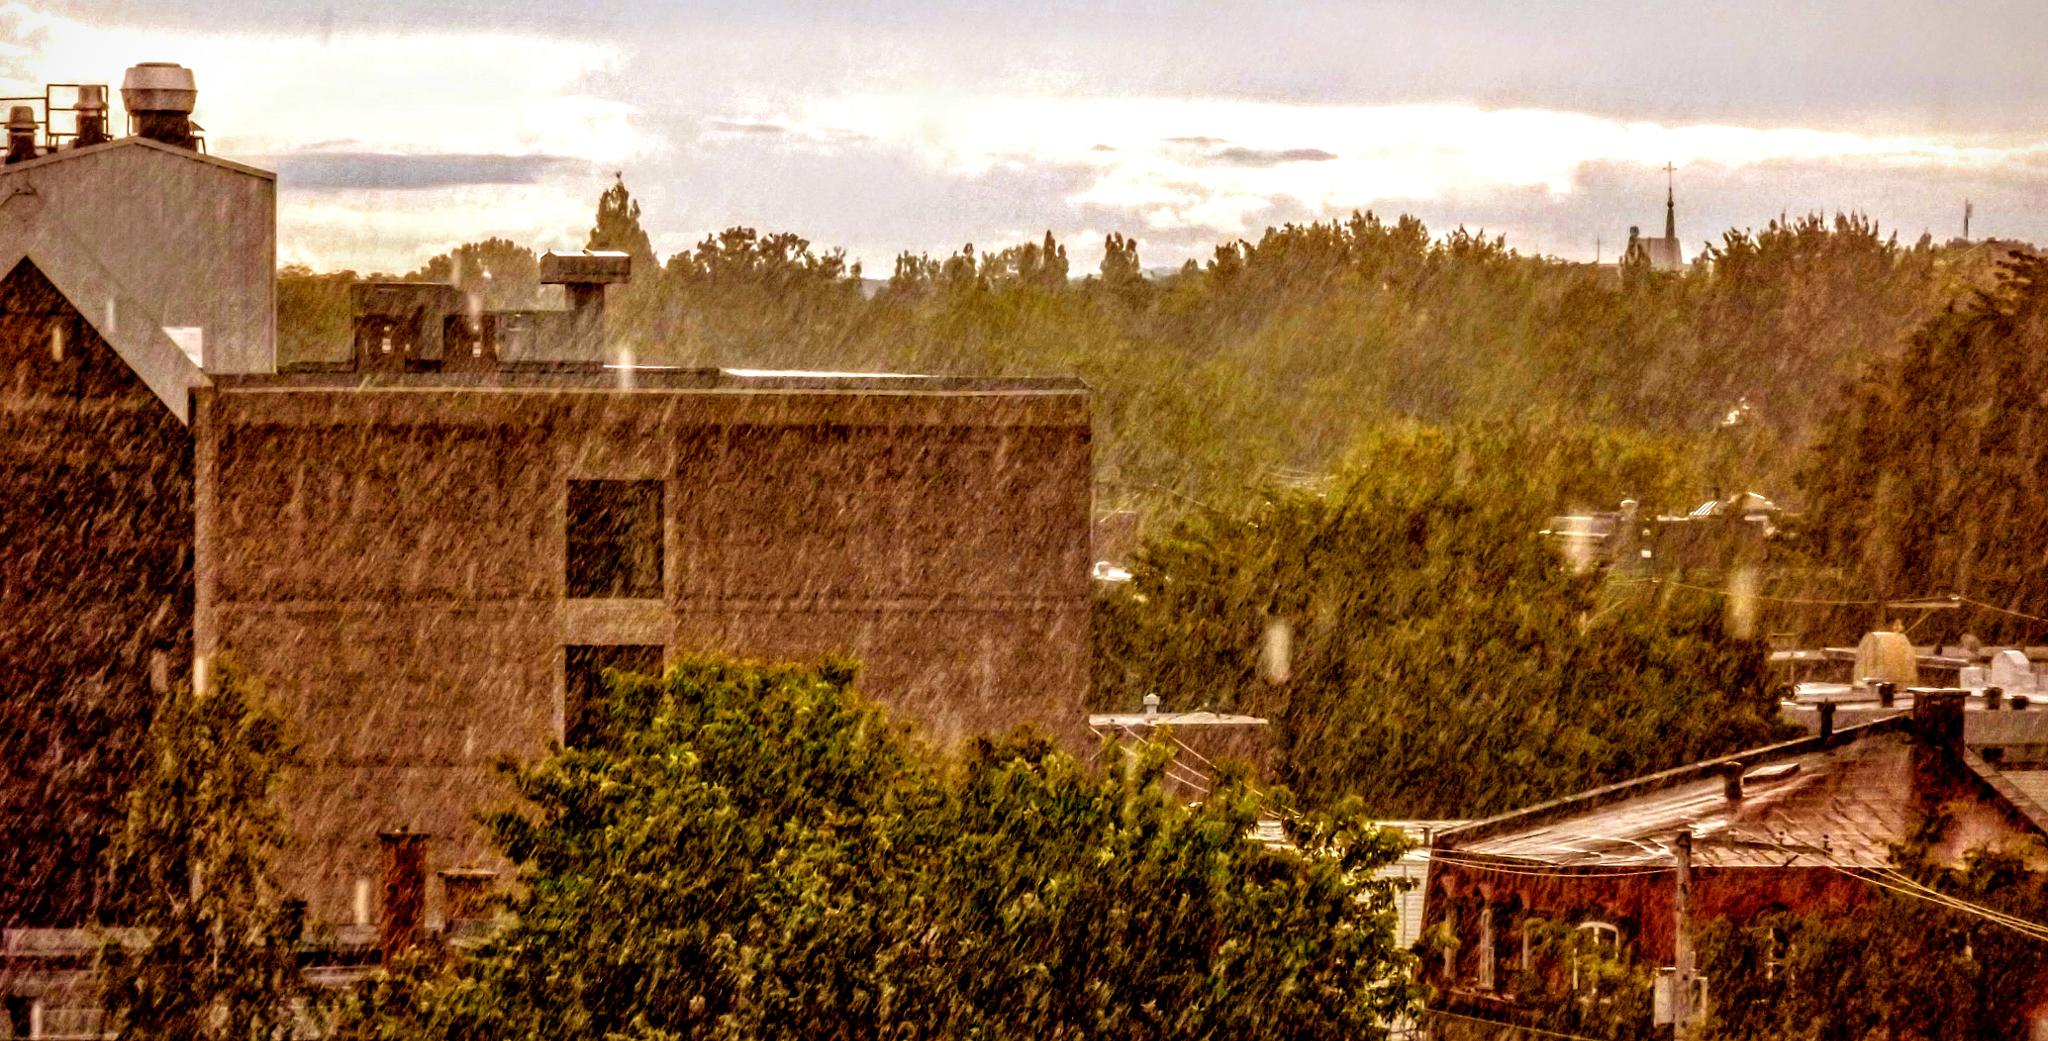 Rainy day by real.michaud.5036